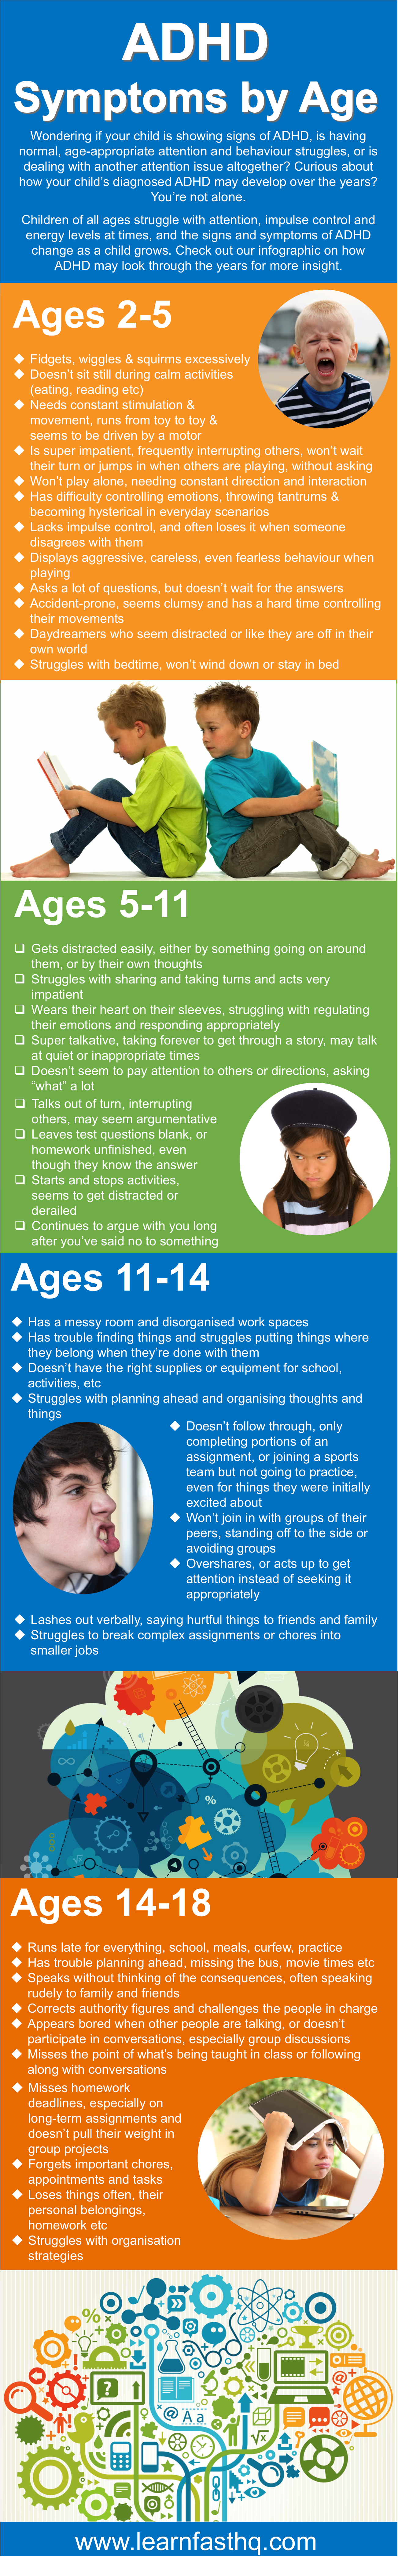 ADHD attention infographic2